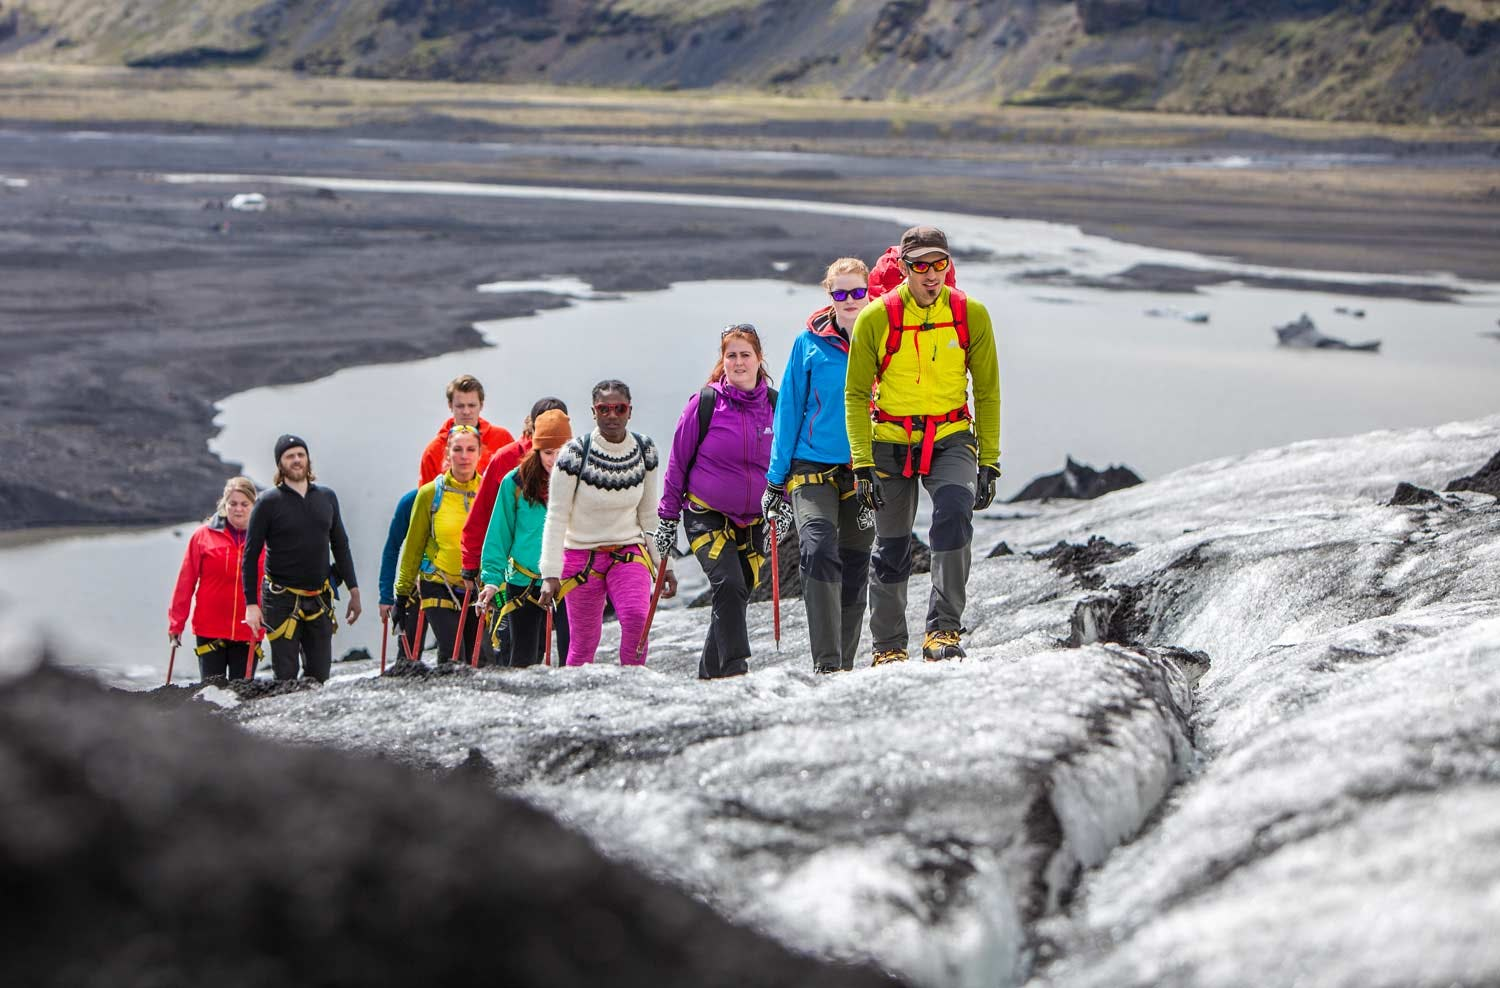 Hiking on Sólheimajökull glacier provides an easy introduction to the sport of glacier hiking.